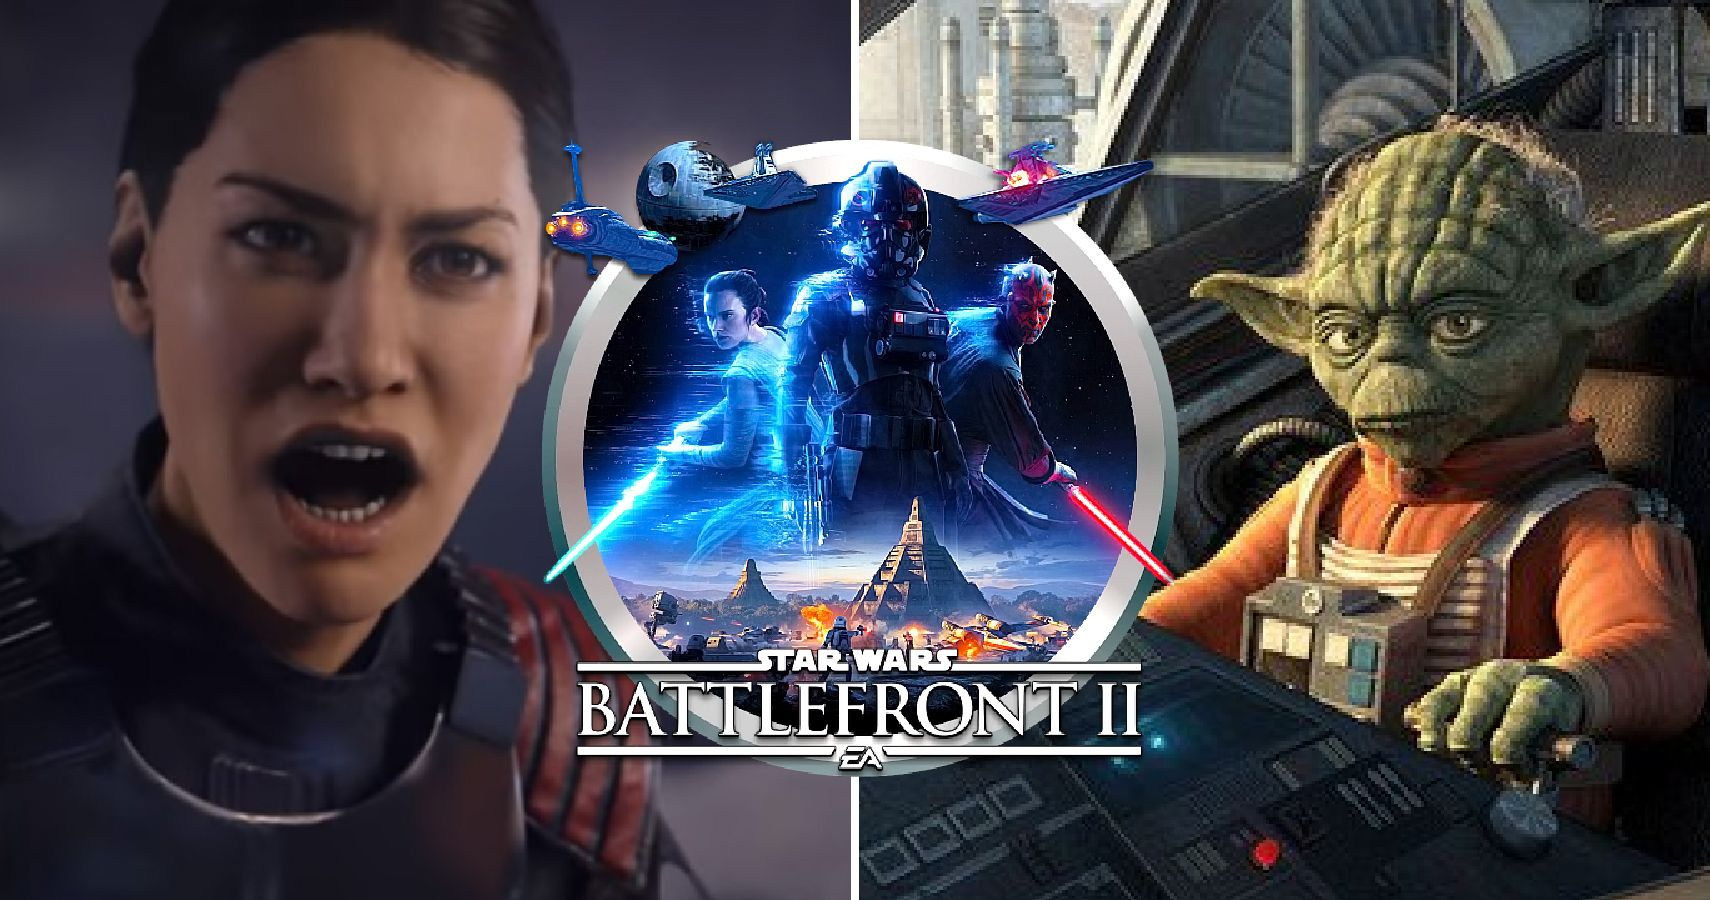 15 Reasons Star Wars: Battlefront 2 Is Going To SUCK